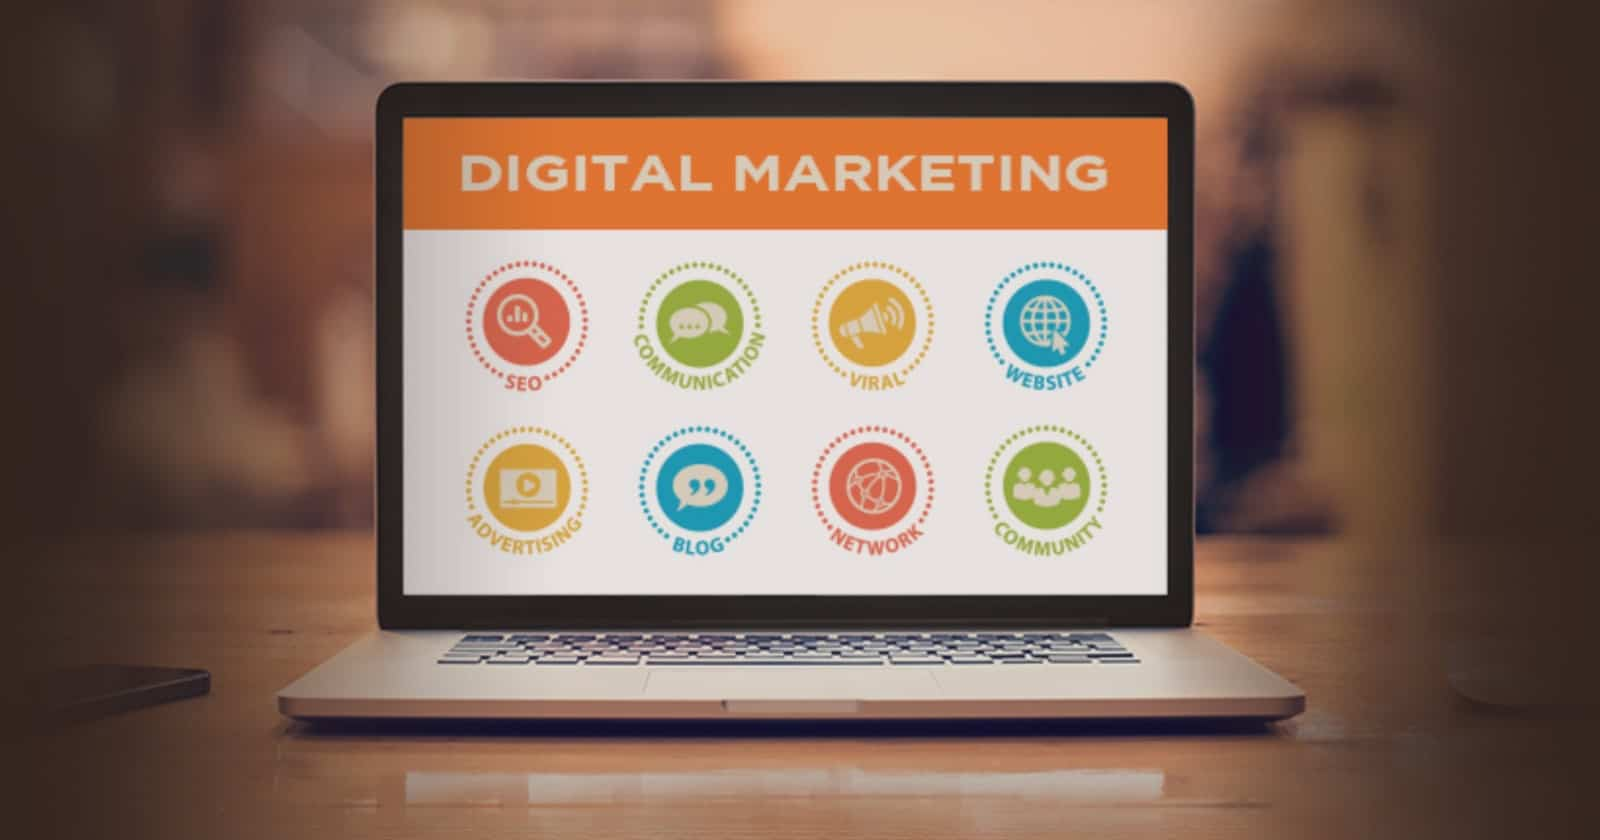 5 Best Digital Marketing Courses to Take in 2021